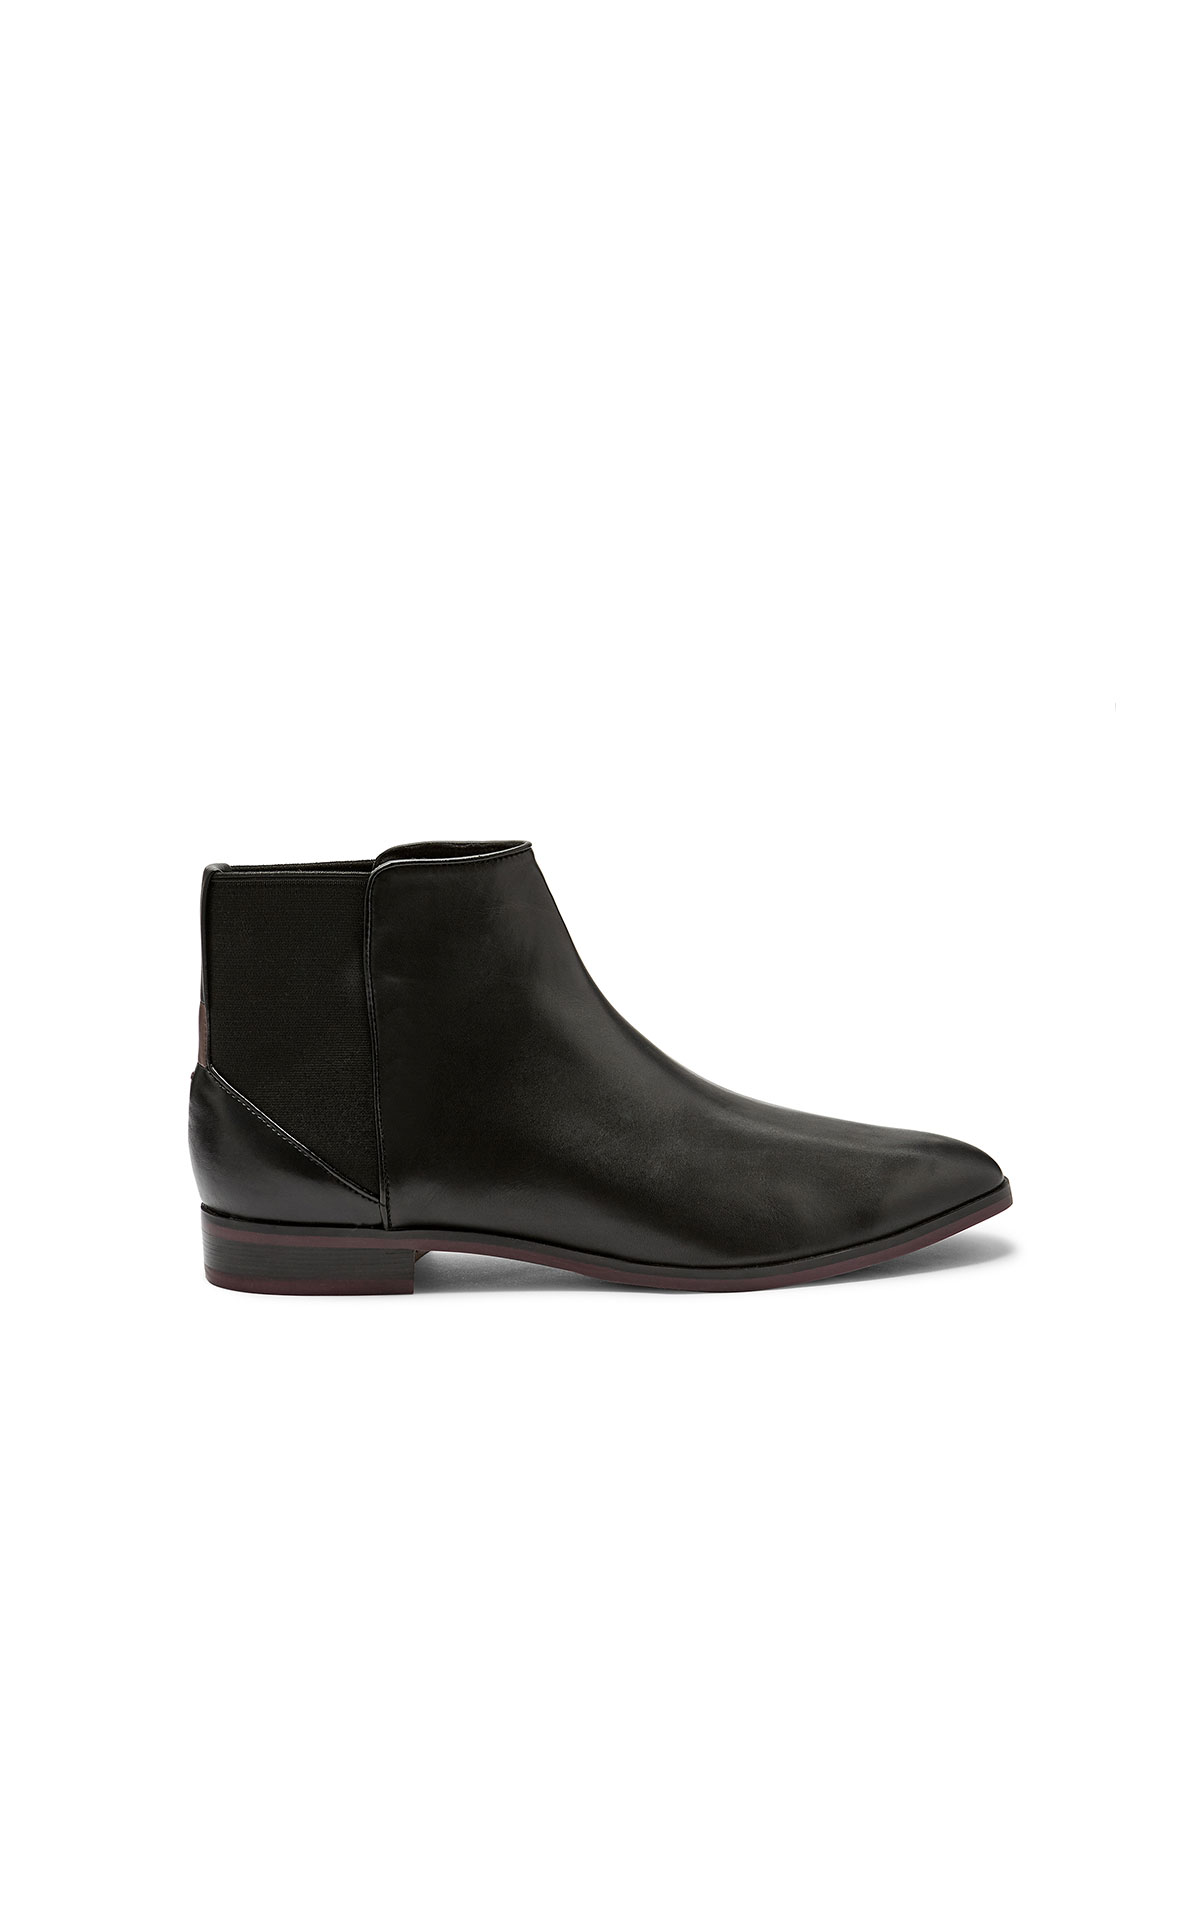 Ted Baker Equise blackleather chelsea boots from Bicester Village